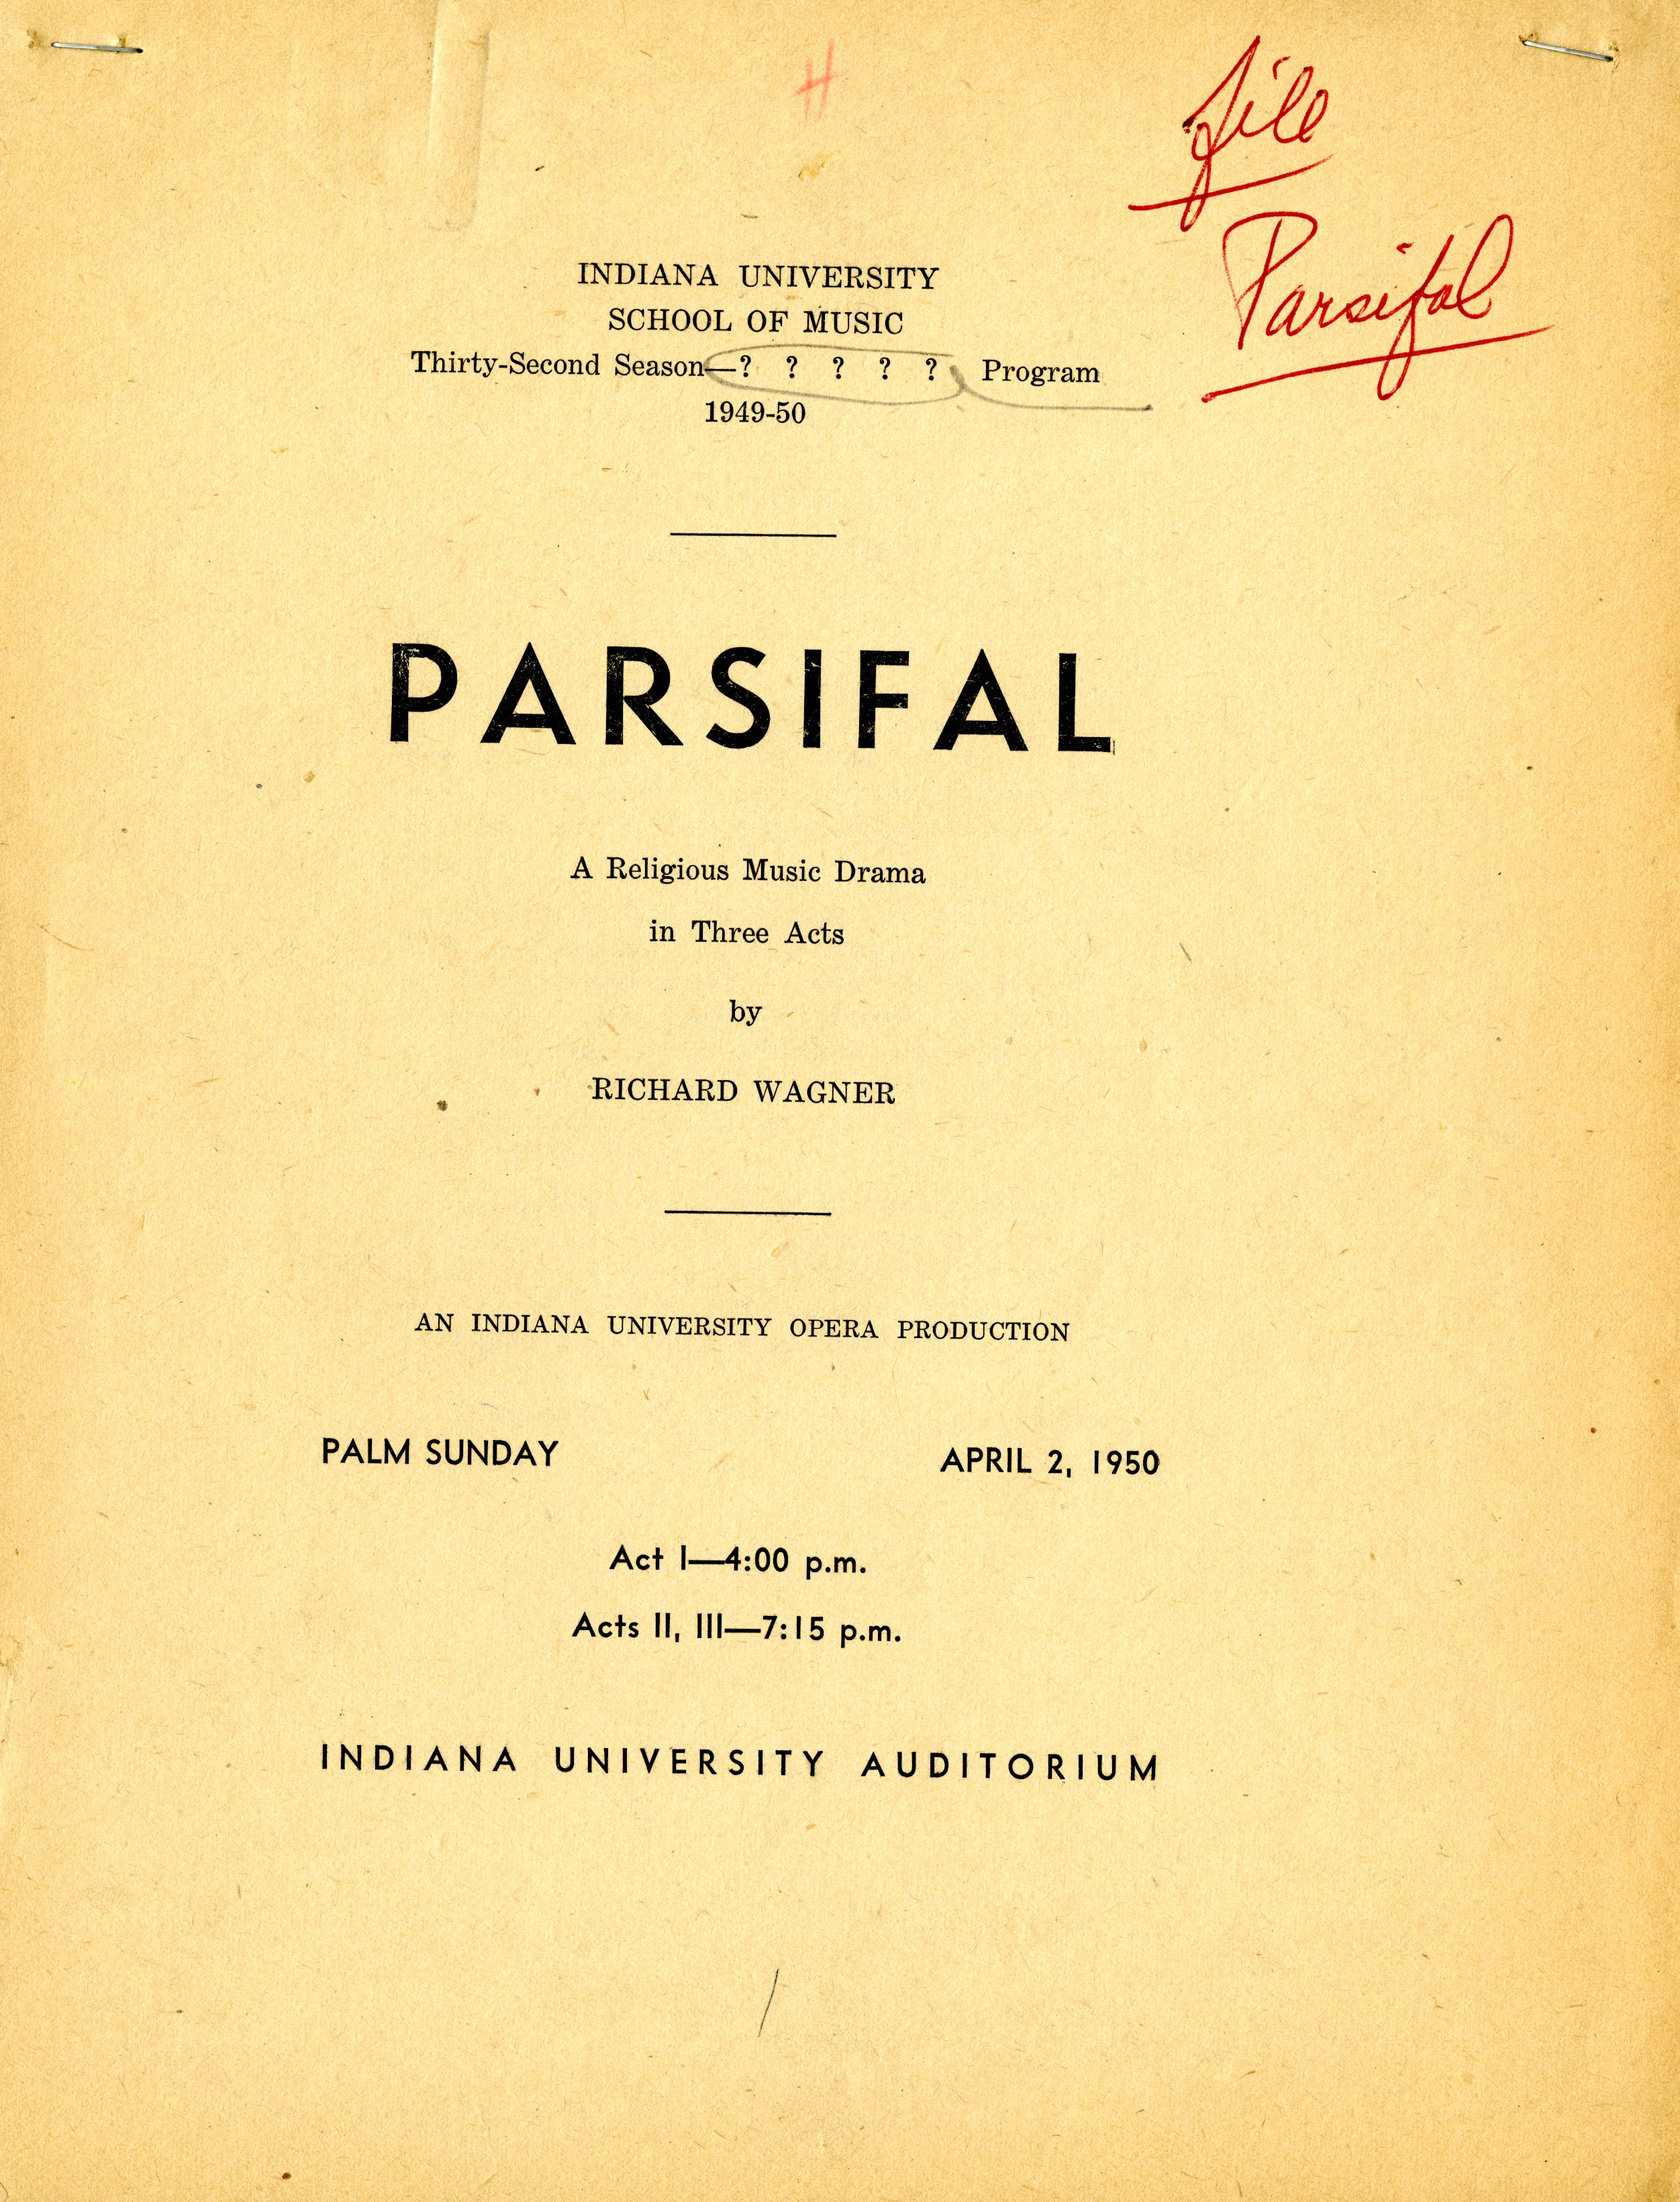 Program with the following text : INDIANA UNIVERSITY SCHOOL OF MUSIC Thirty-Second Season Parsifal: A Religious Music Drama in Three Acts by Richard Wagner An Indiana University Opera Production Palm Sunday, April 2, 1950 Act 1 - 4:00 pm Act 2 - 7:15 pm Indiana University Auditorium